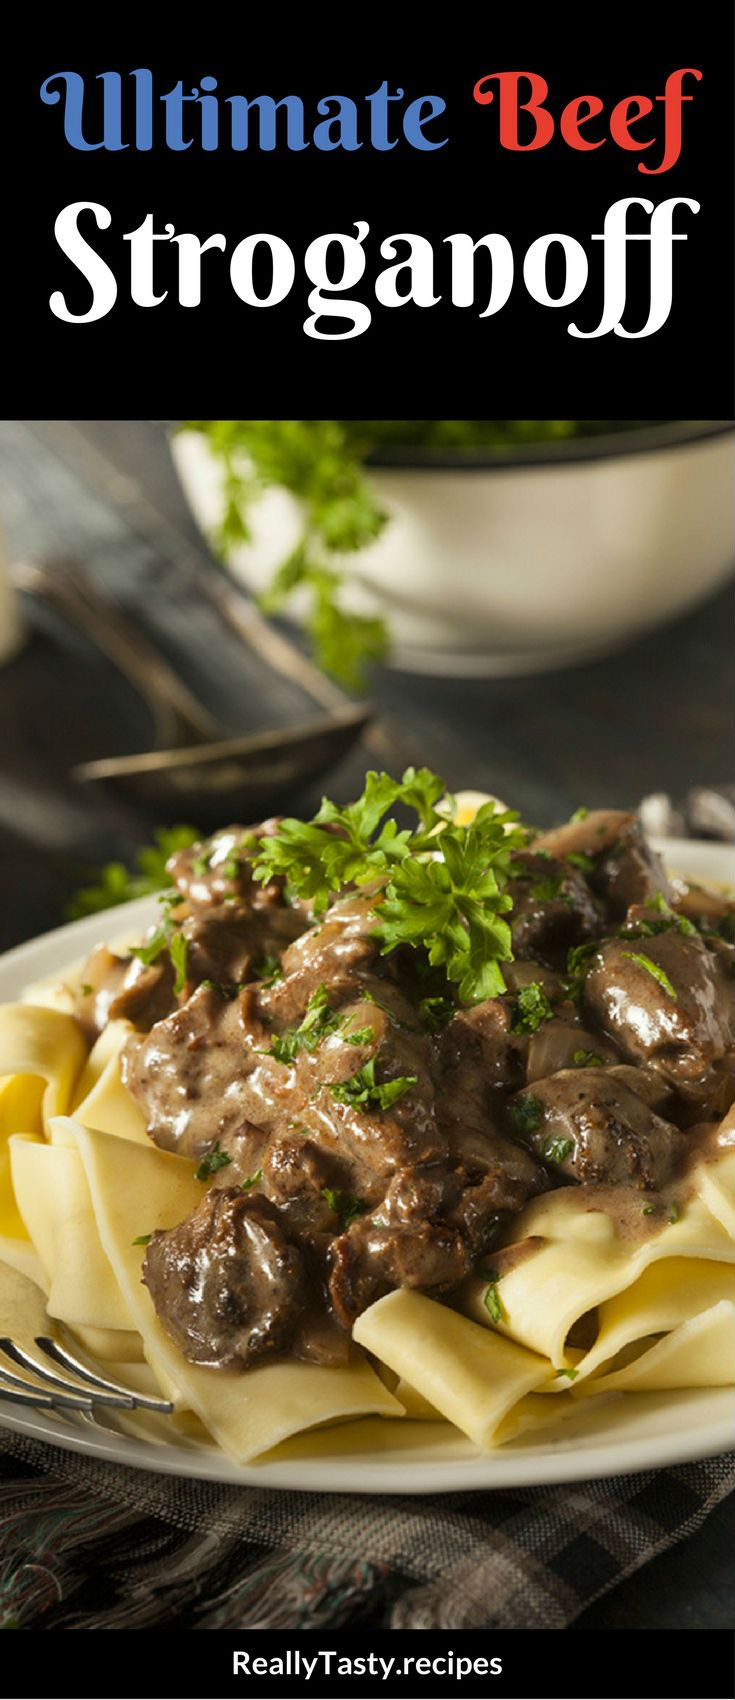 When I was in school, the school dinners we were served weren't always fantastic. But the exception was Beef Stroganoff.